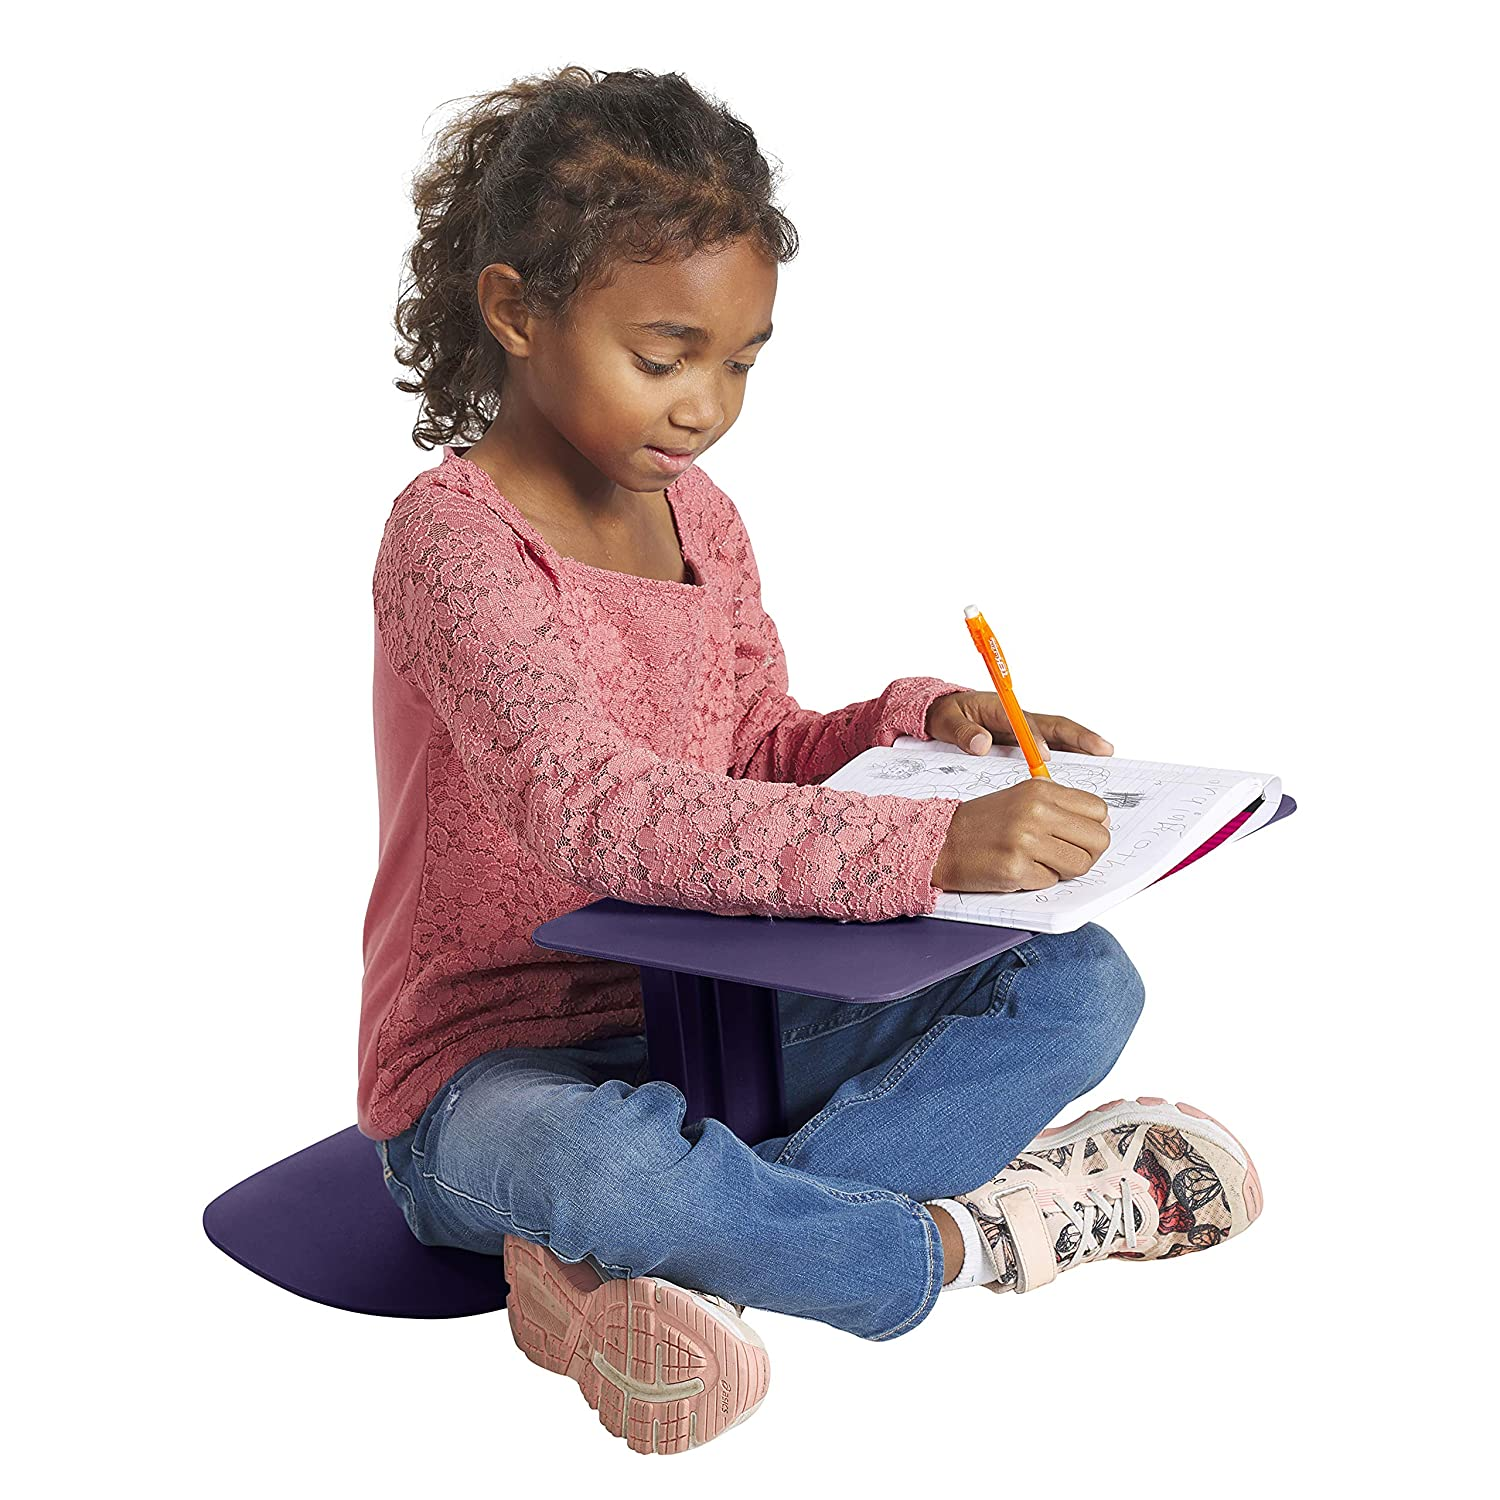 ECR4Kids The Surf Portable Lap Desk, Flexible Seating for Homeschool and Classrooms, One-Piece Writing Table for Kids, Teens and Adults, GREENGUARD [Gold] Certified, Eggplant